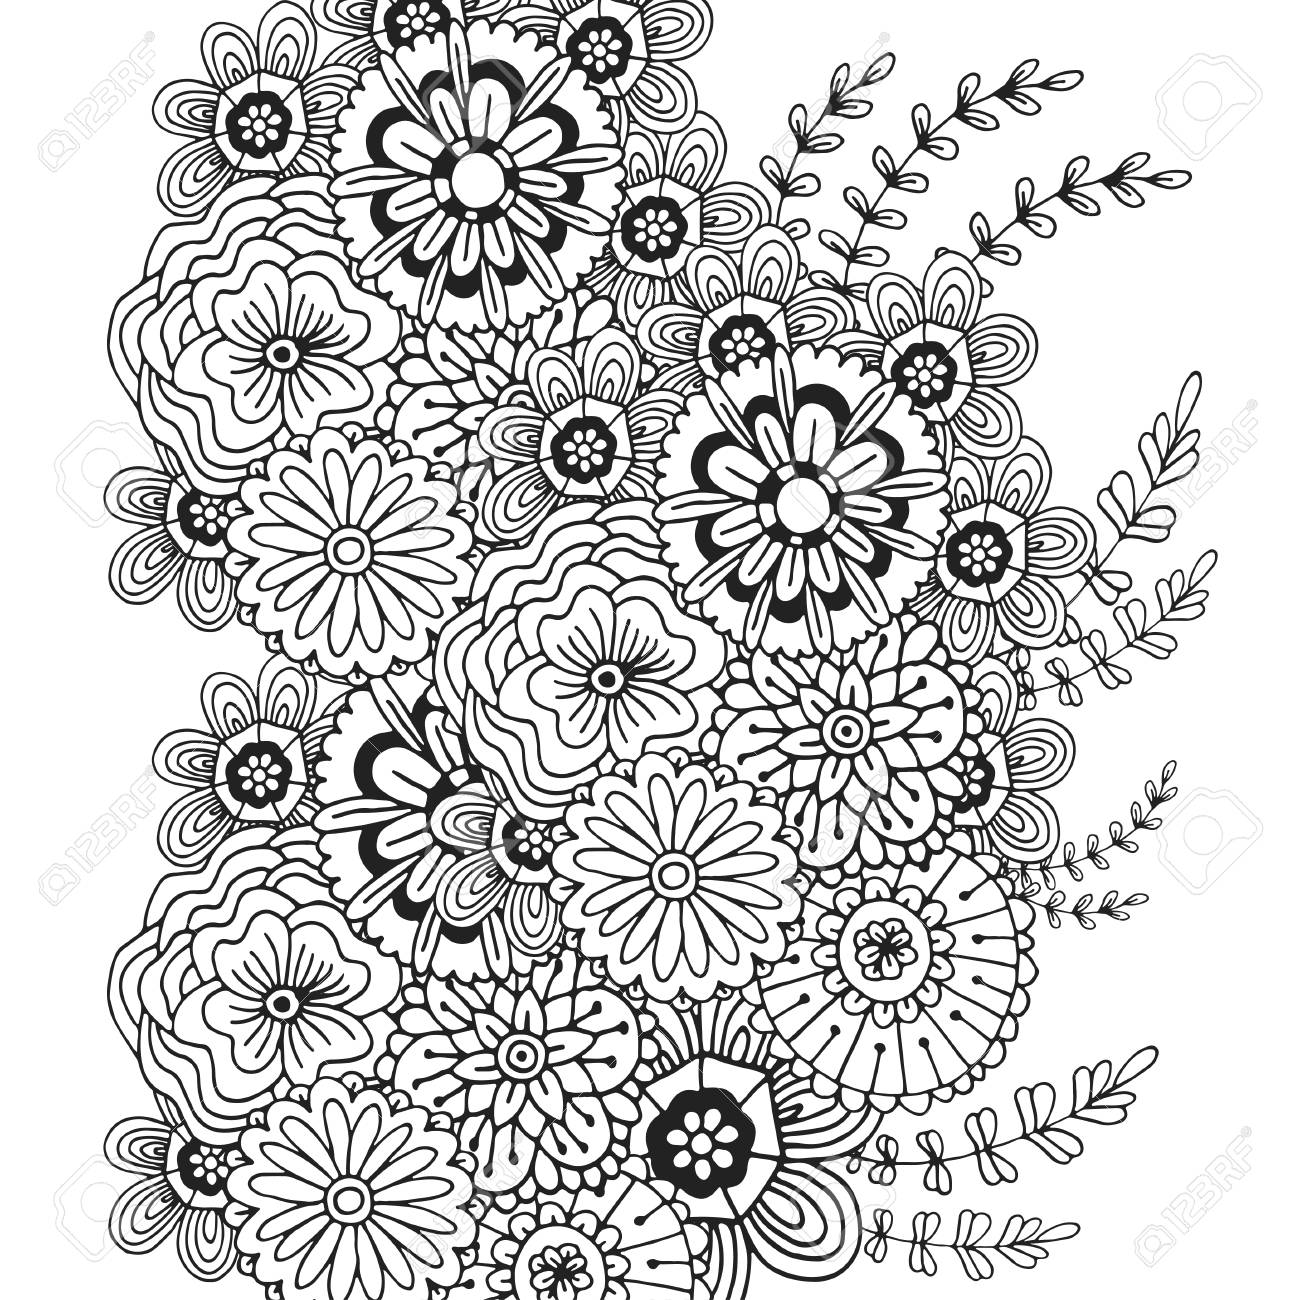 Pattern With Doodle Ornament Of Flowers Adult Coloring Book Page Design For Decoration